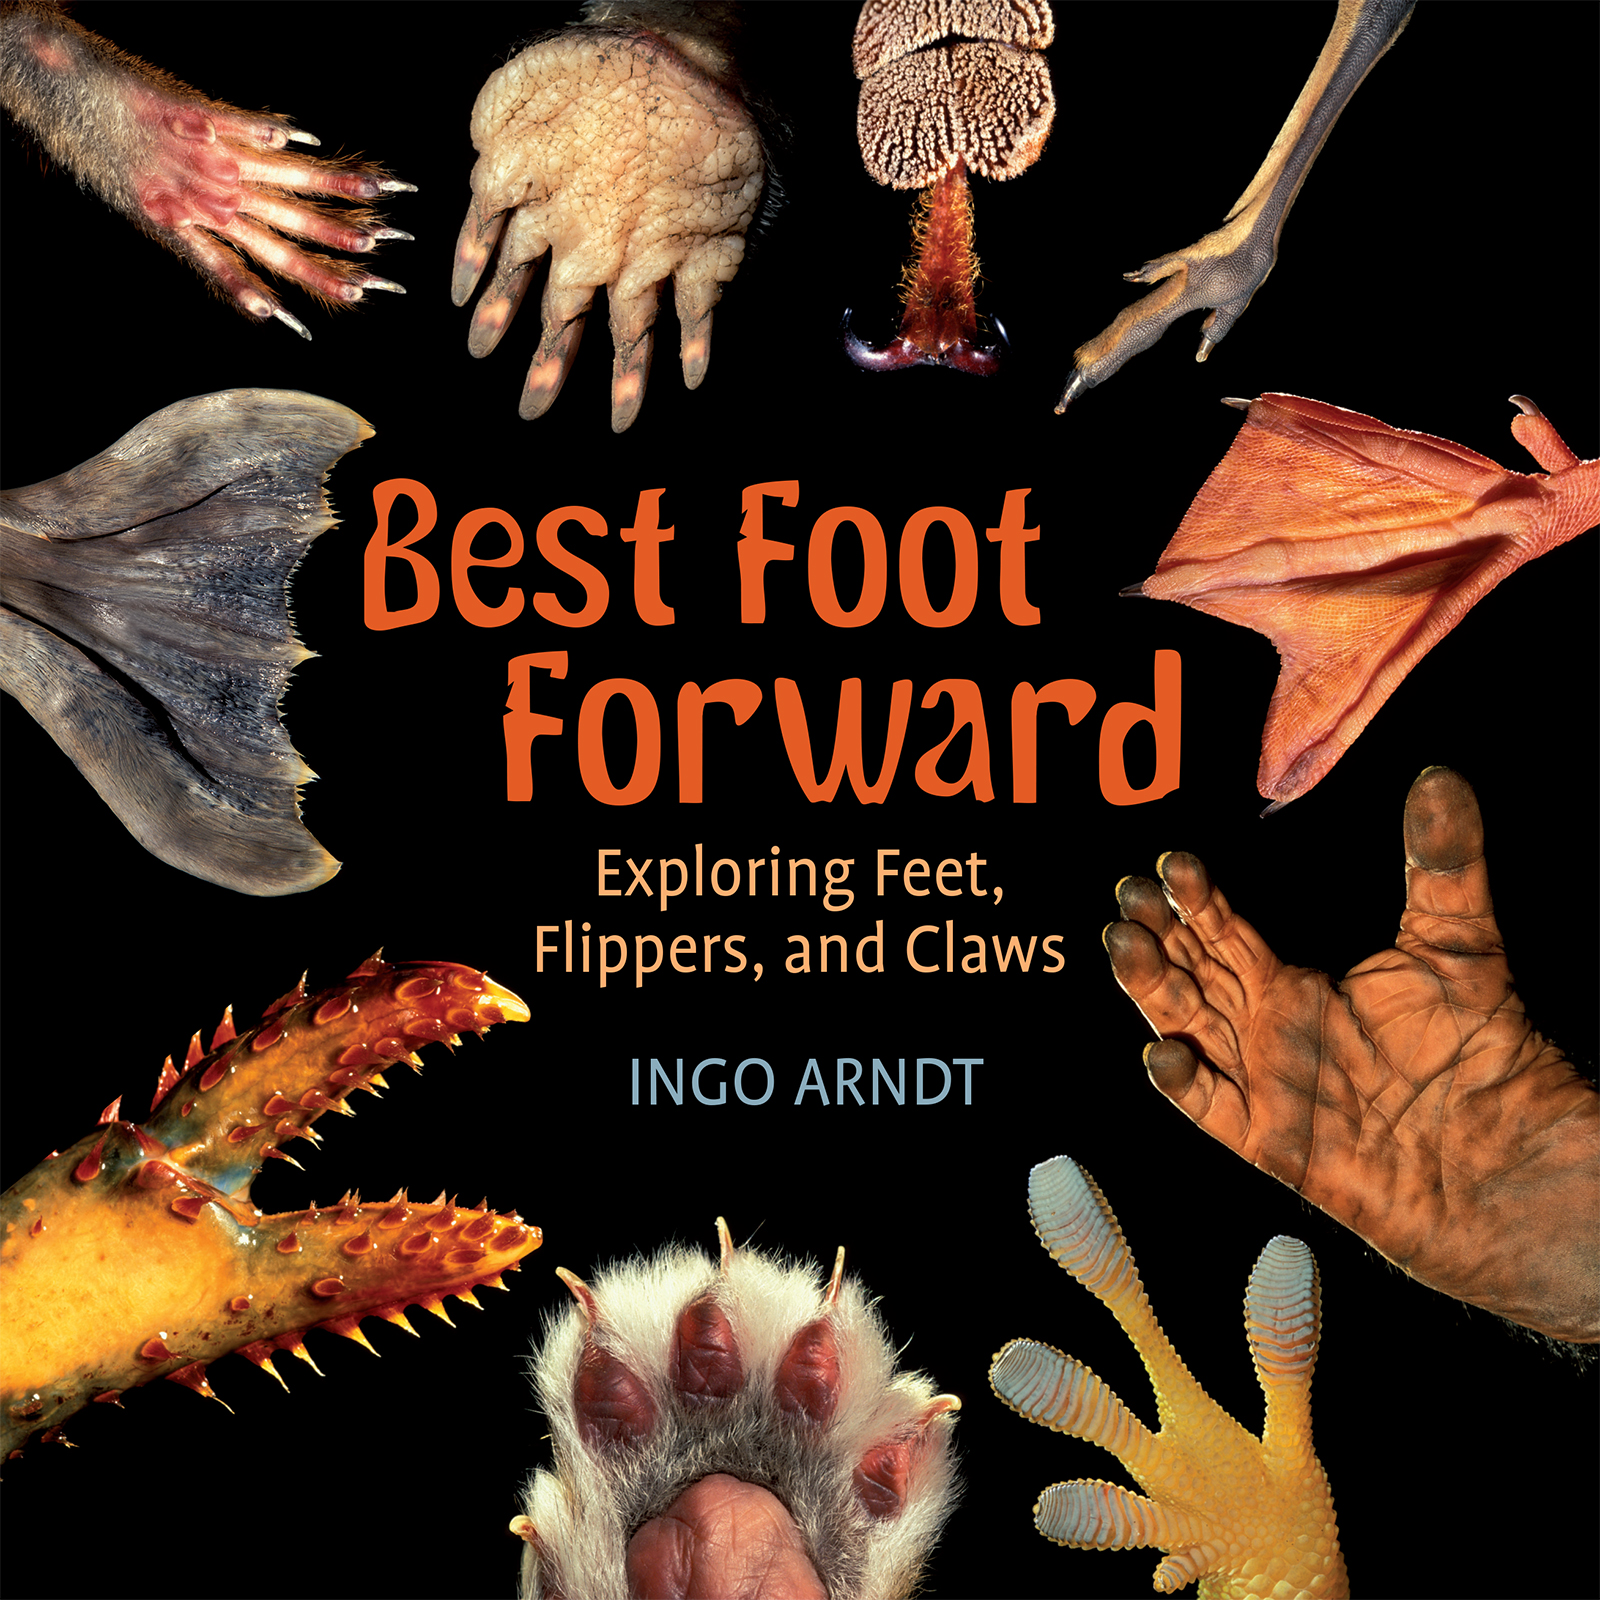 Best Foot Forward Exploring  Feet, Flippers, and Claws